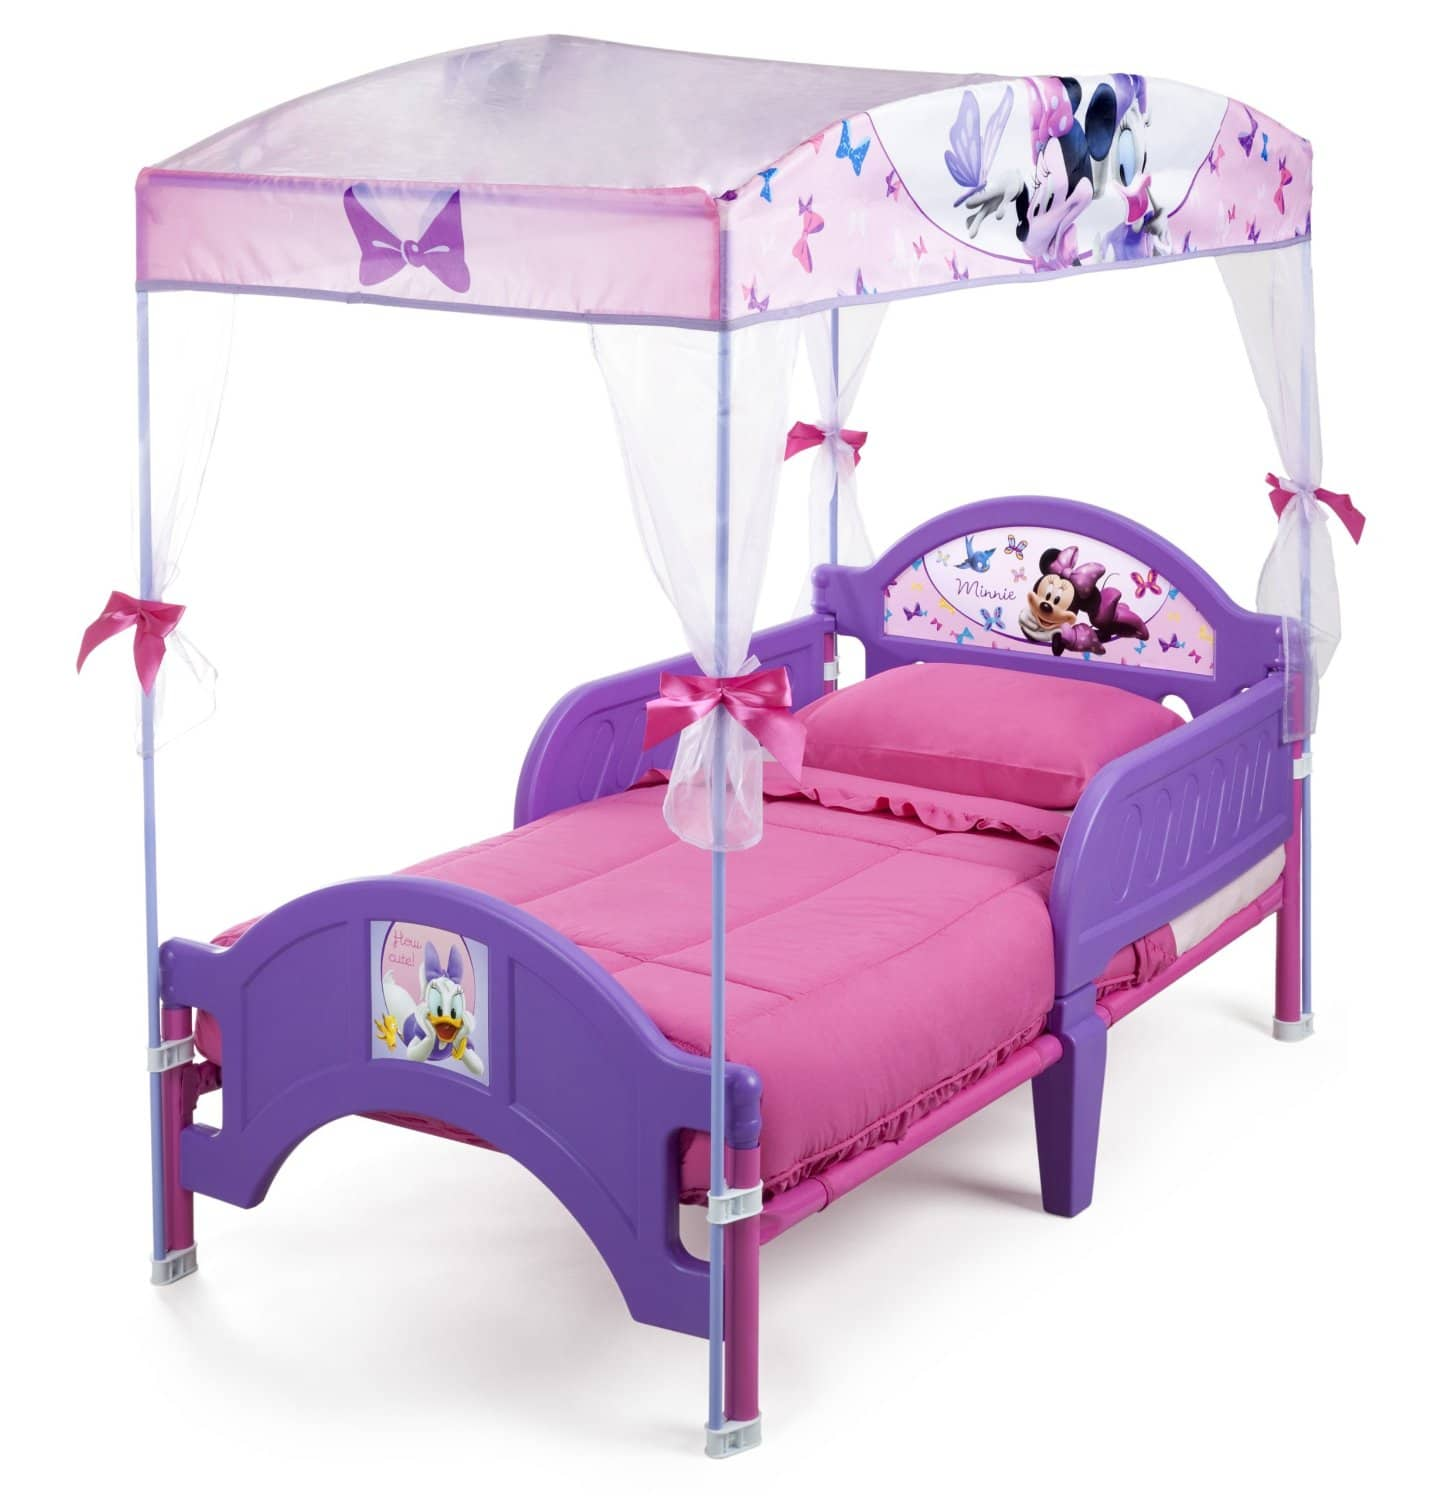 Top 10 best toddler beds in 2015 reviews - Mini mouse bedroom ...